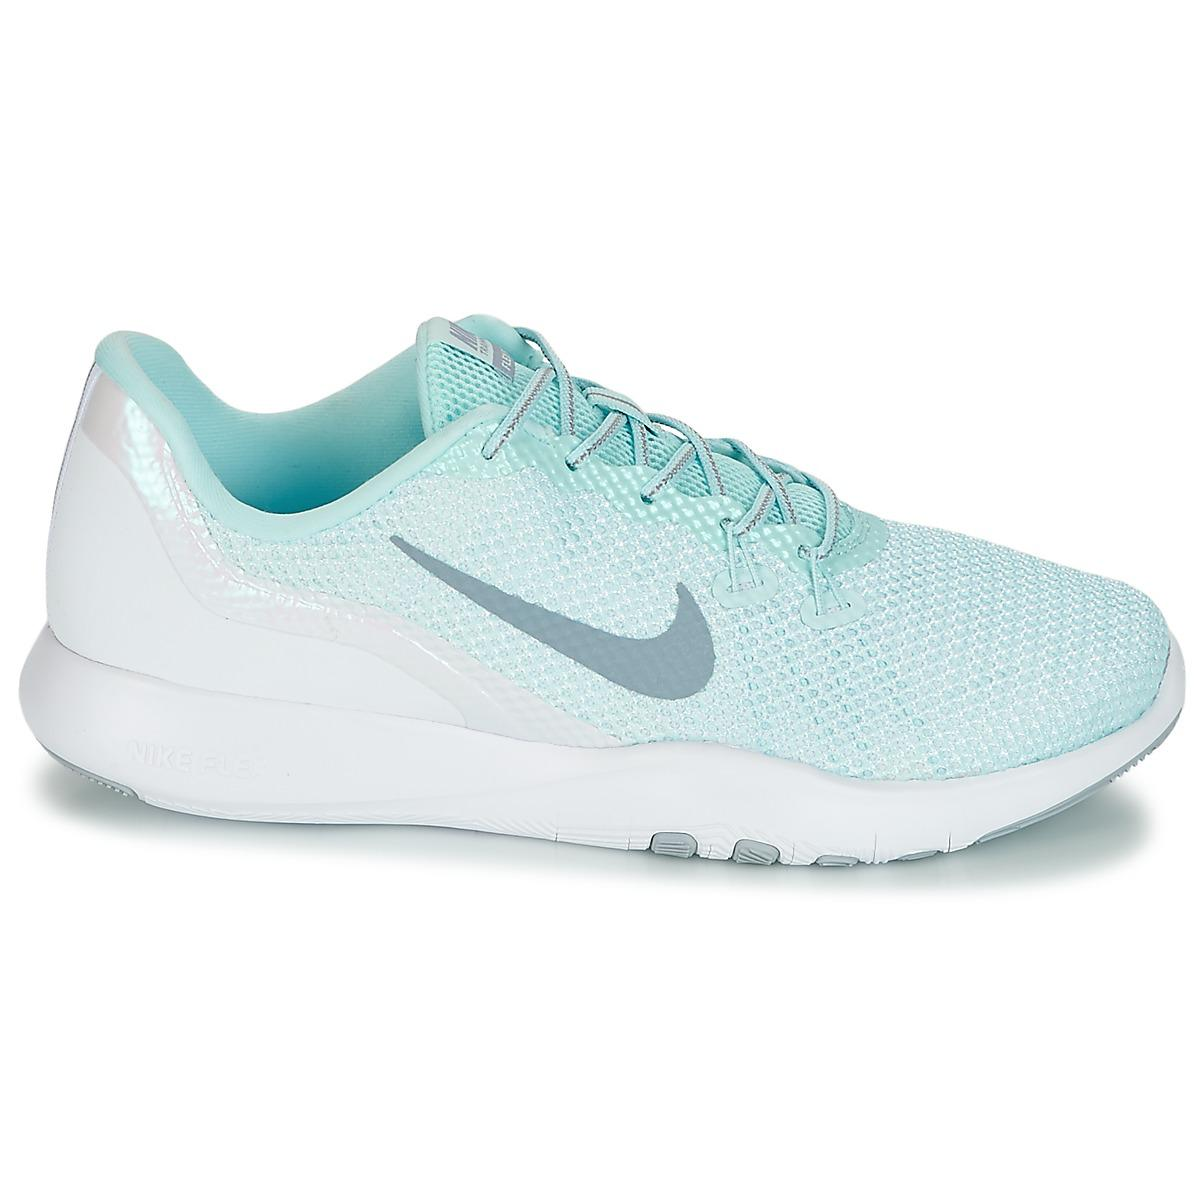 ad49d4b01656 Nike Flex Trainer 7 Reflect W Women s Trainers In White in White - Lyst